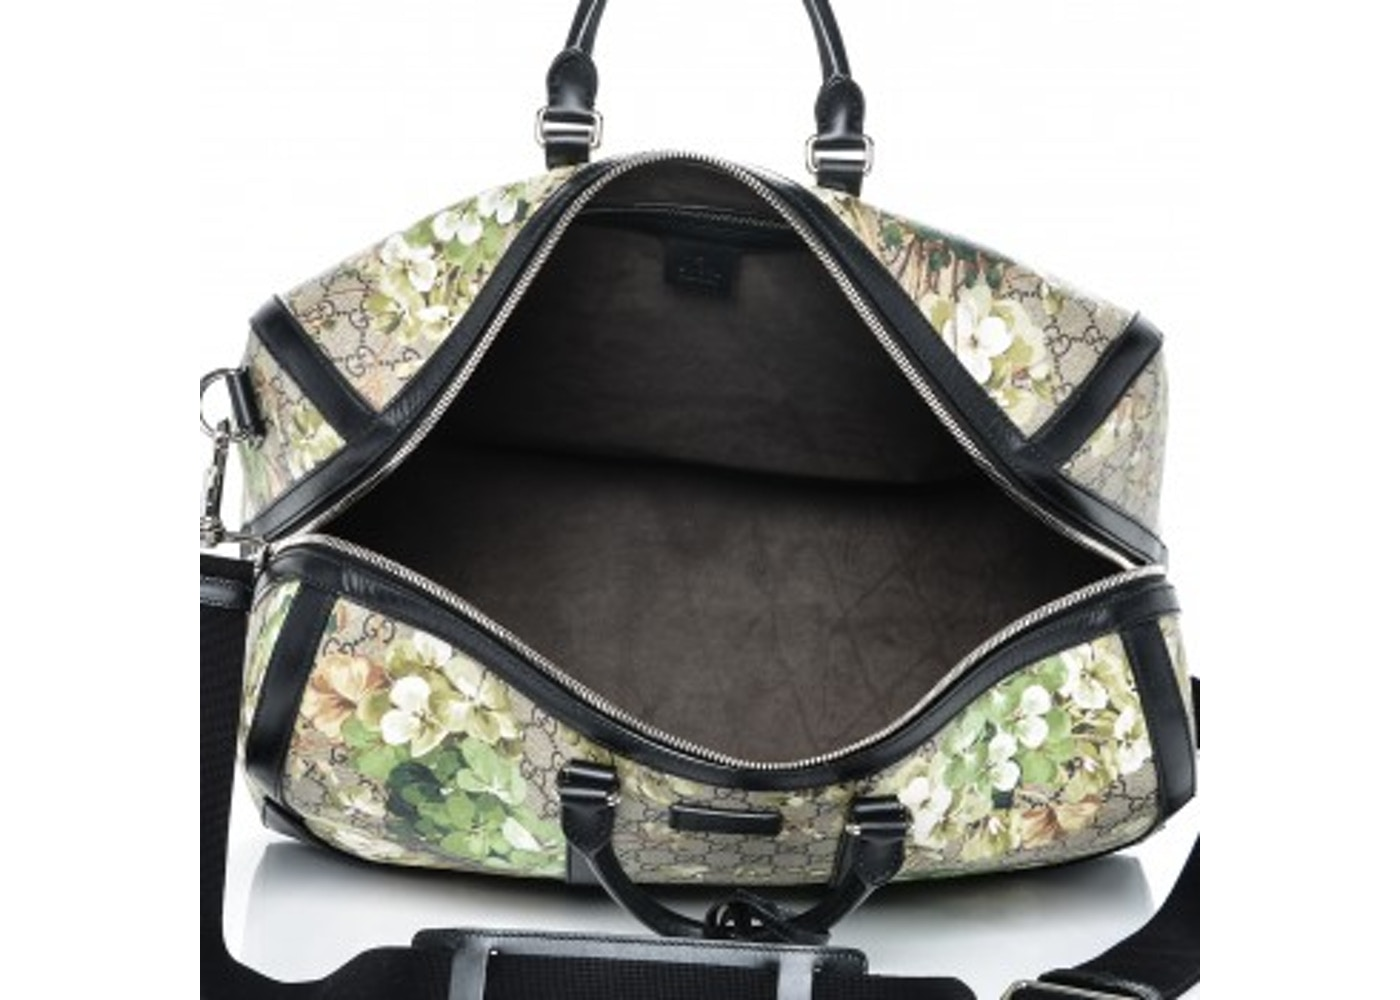 7bc640017c5a Gucci Duffle Bag Blooms GG Supreme Monogram Floral Print Medium Green/Black